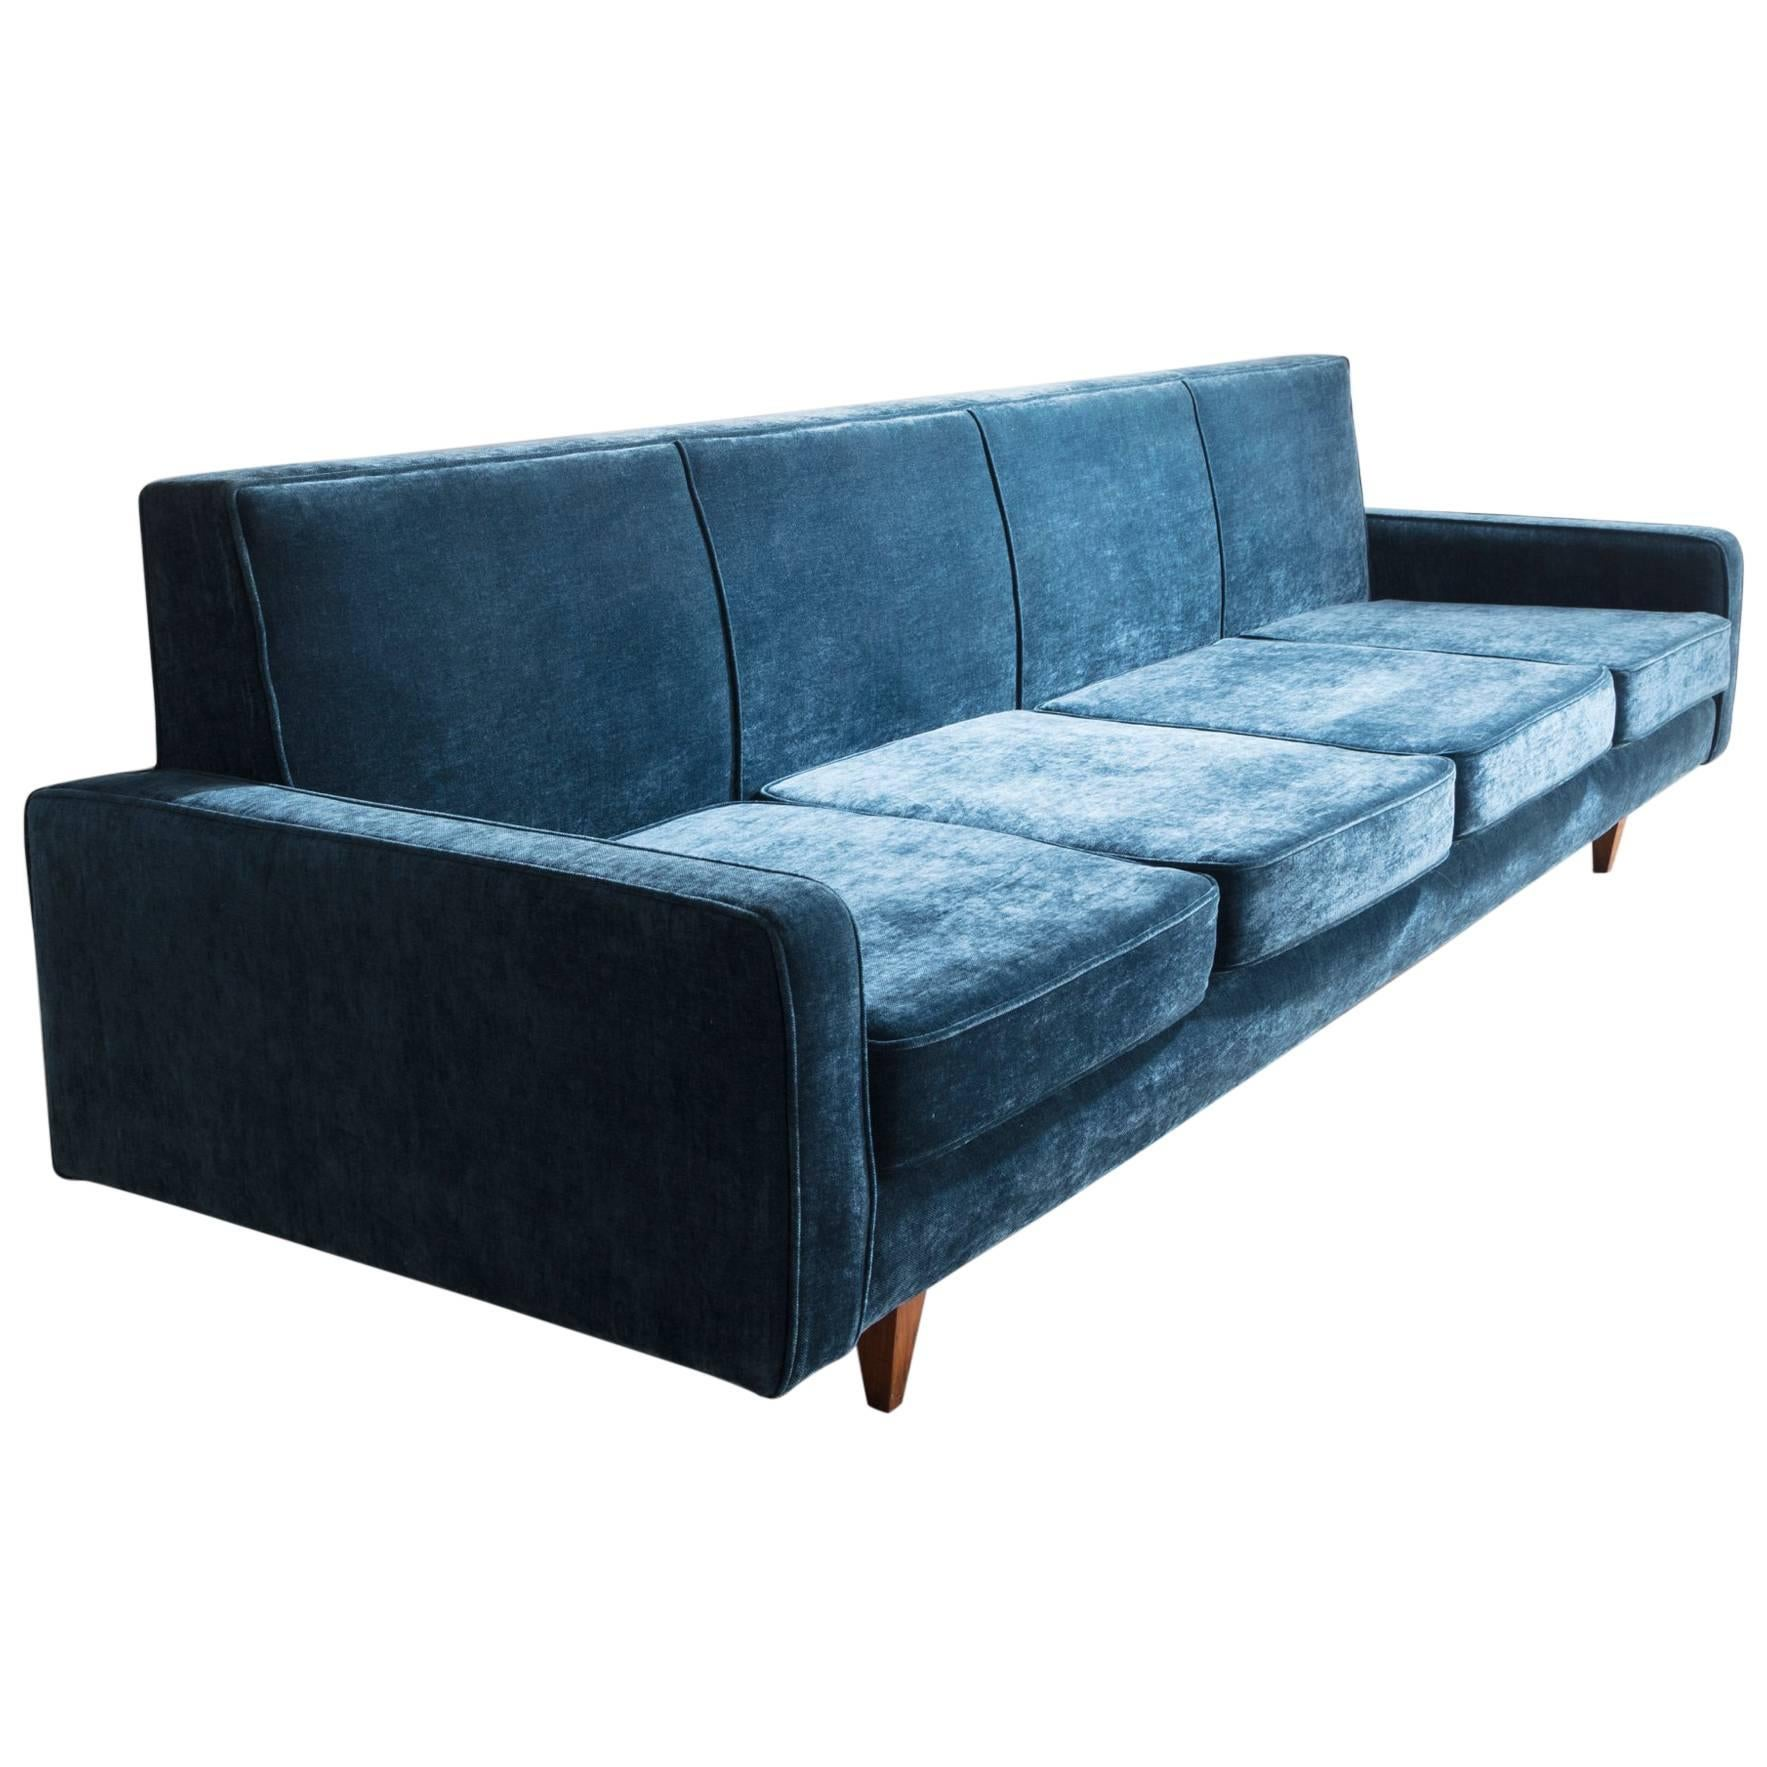 Lounge Stoel Bed.Joaquim Tenreiro Furniture Chairs Sofas Storage Cabinets More